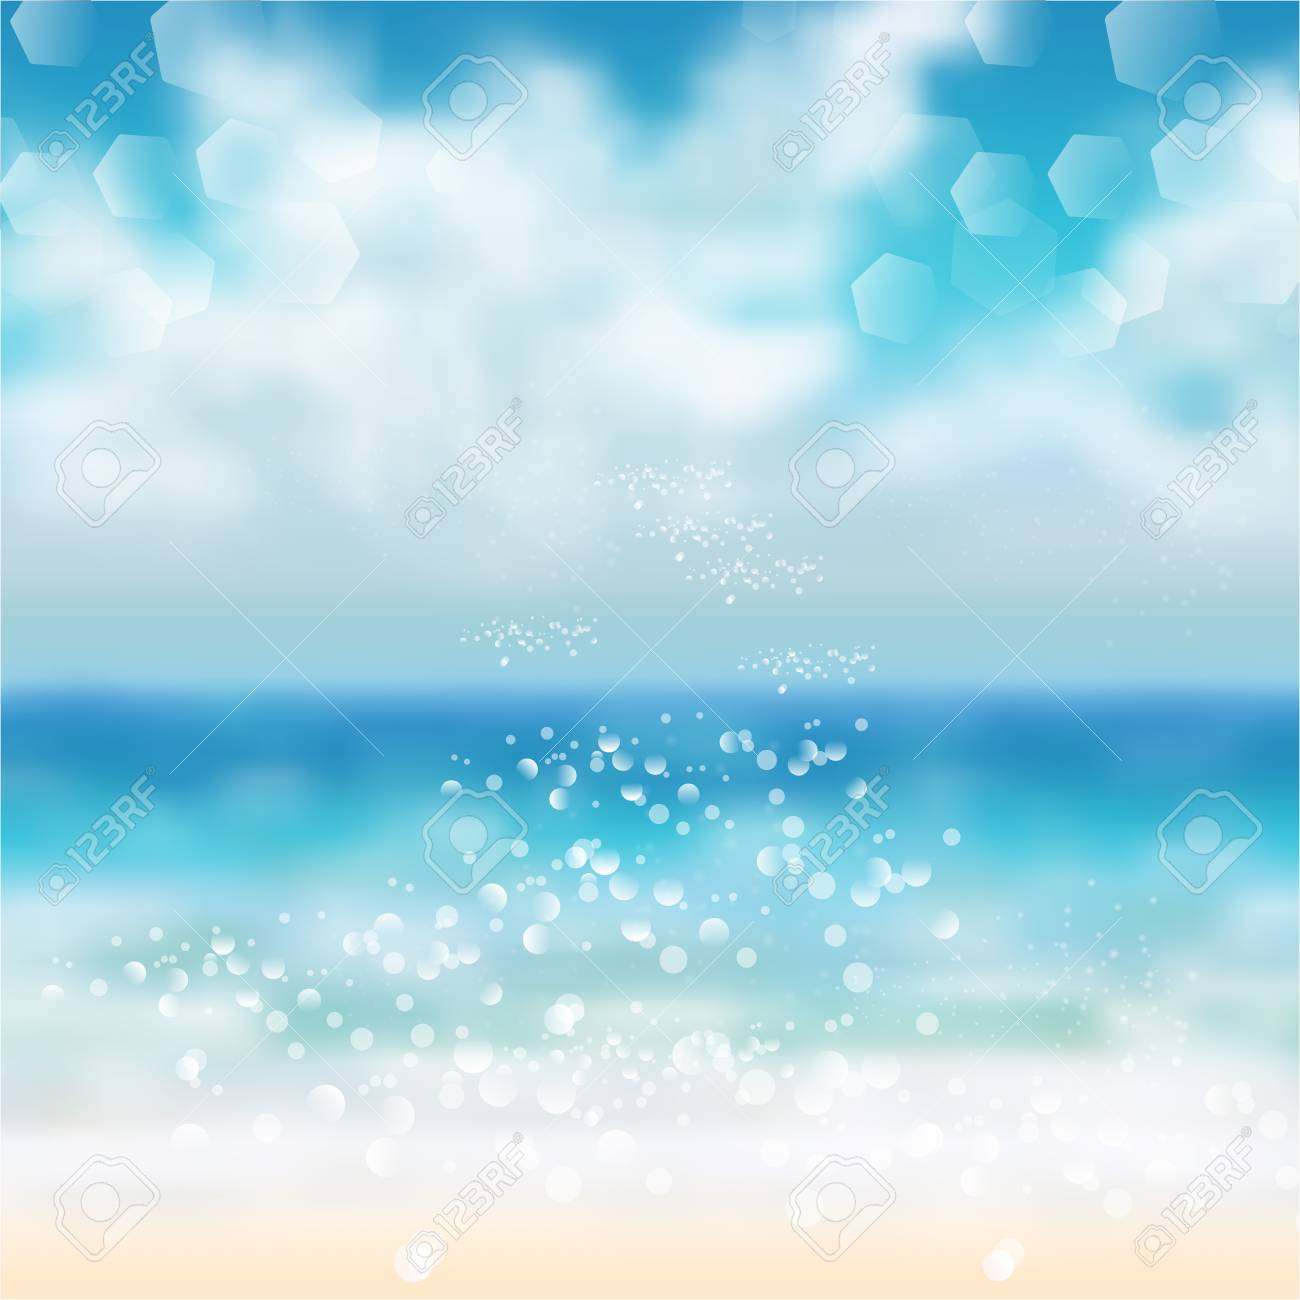 spring and summer watercolor ocean background with shining sparks